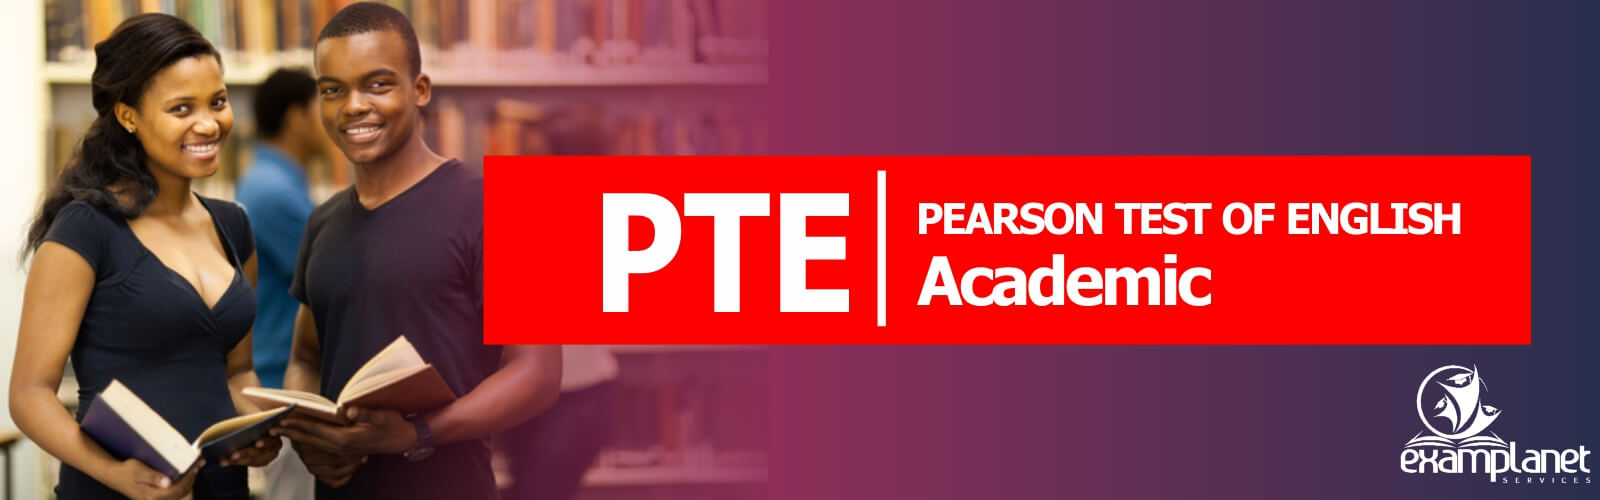 PTE IN NIGERIA - PTE EXAM, REGISTRATION & TUTORIAL CENTERS